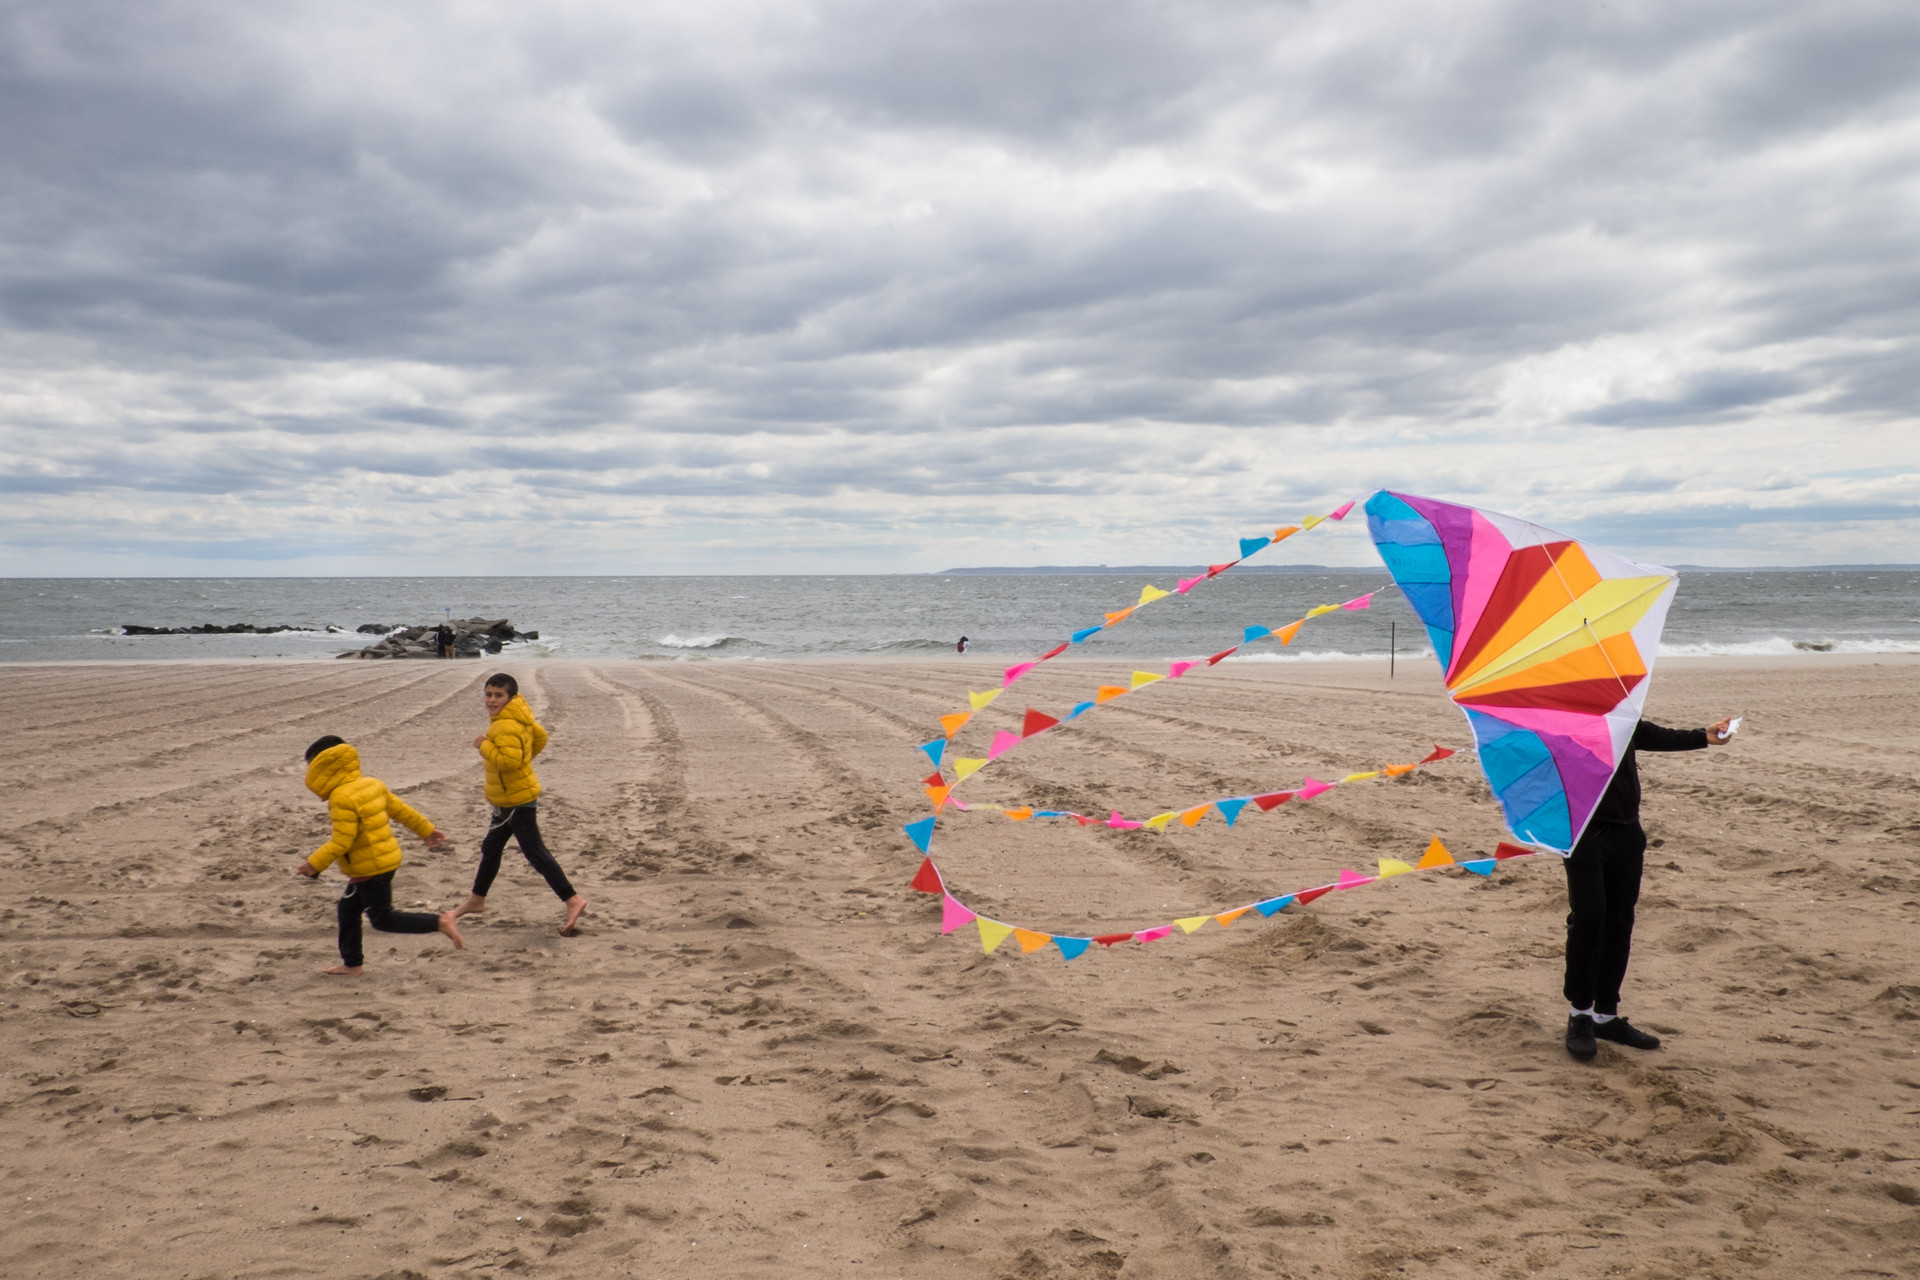 A Cloudy Day in Coney